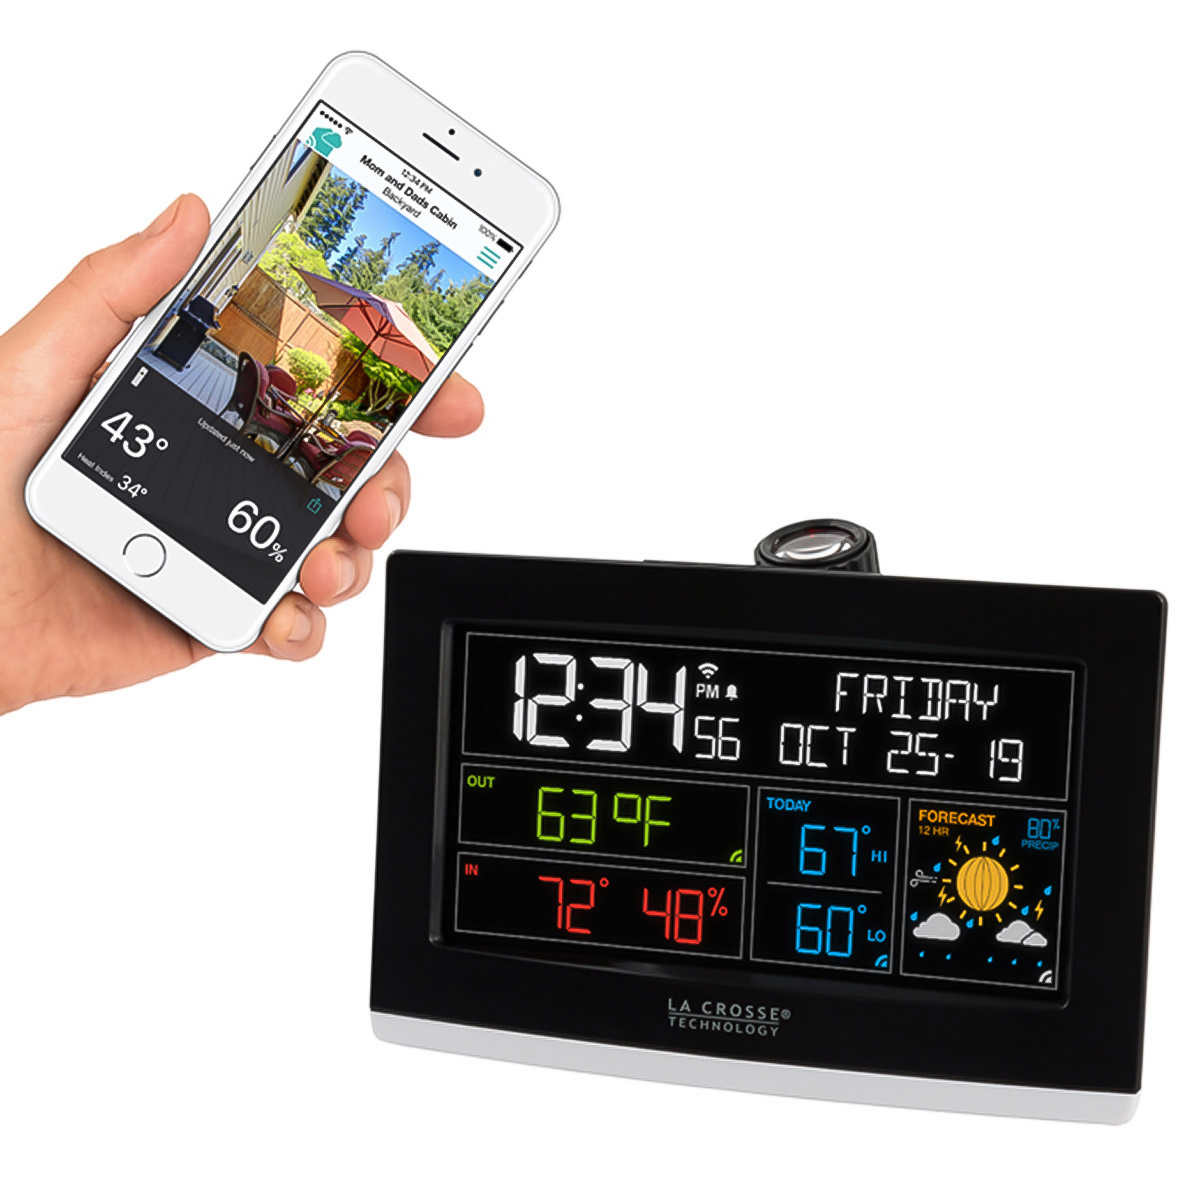 La Crosse Projection Alarm Clock with Weather Information